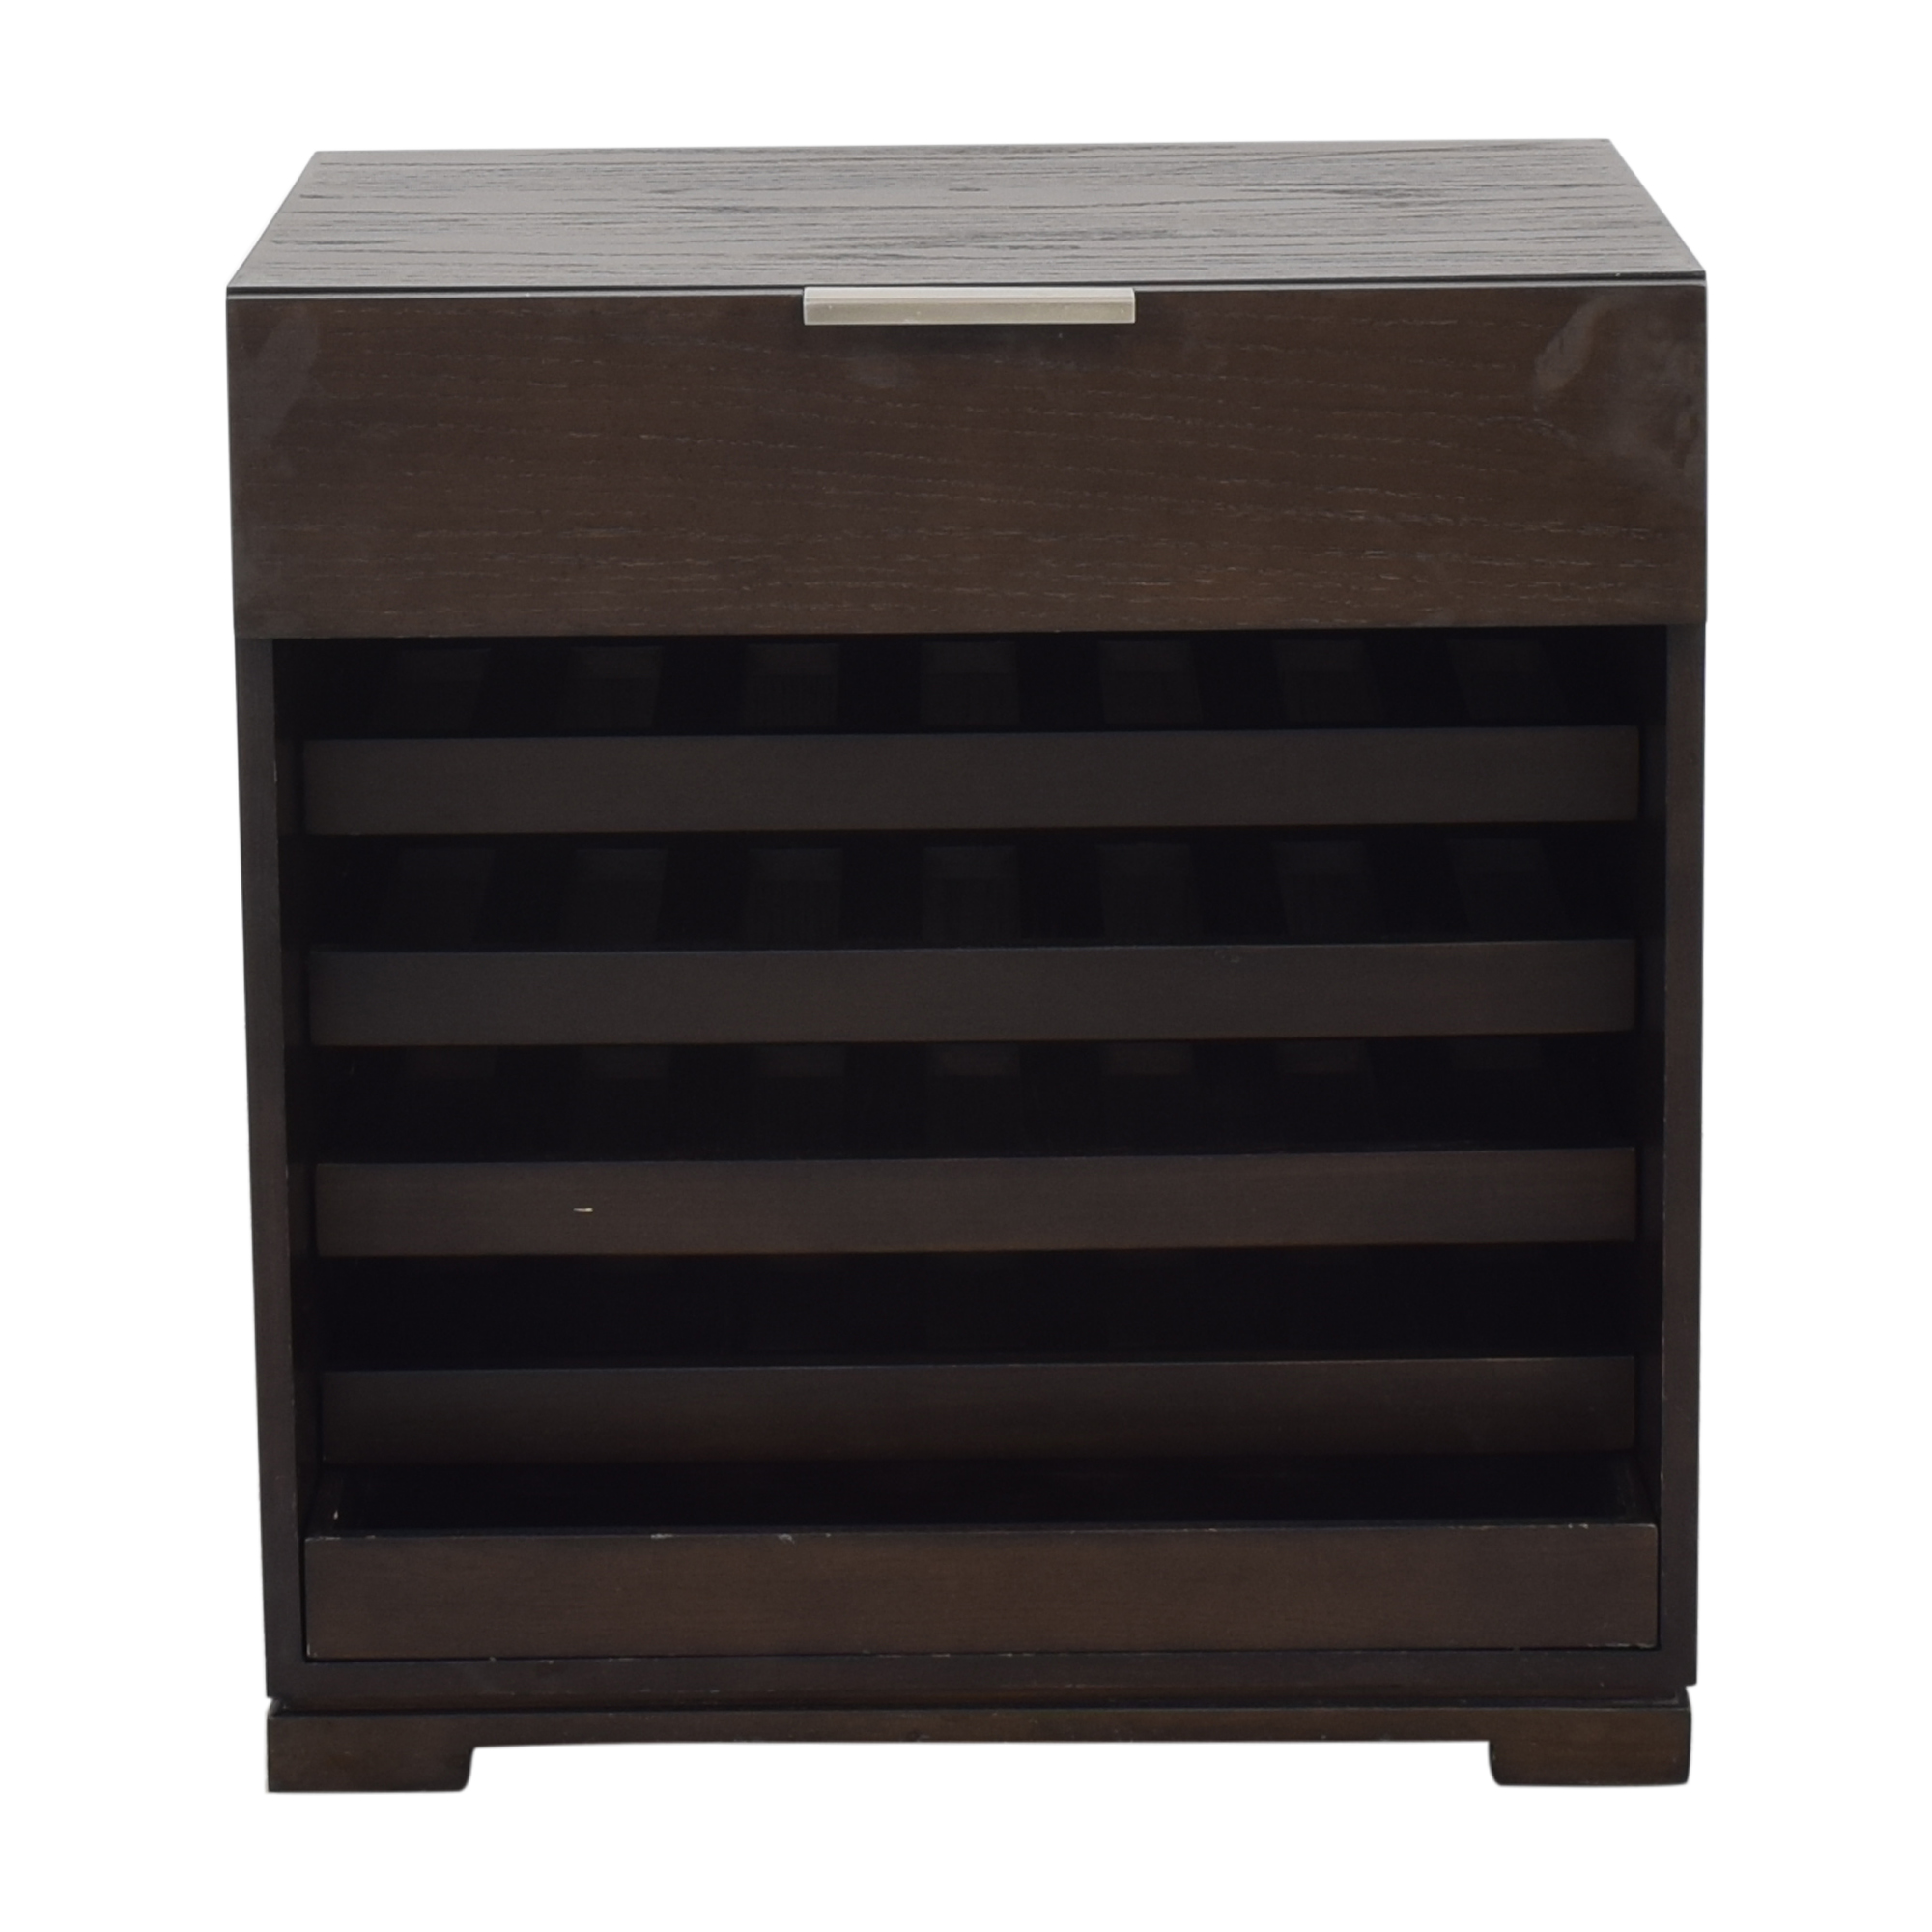 West Elm West Elm Wine Rack With Top Drawer coupon